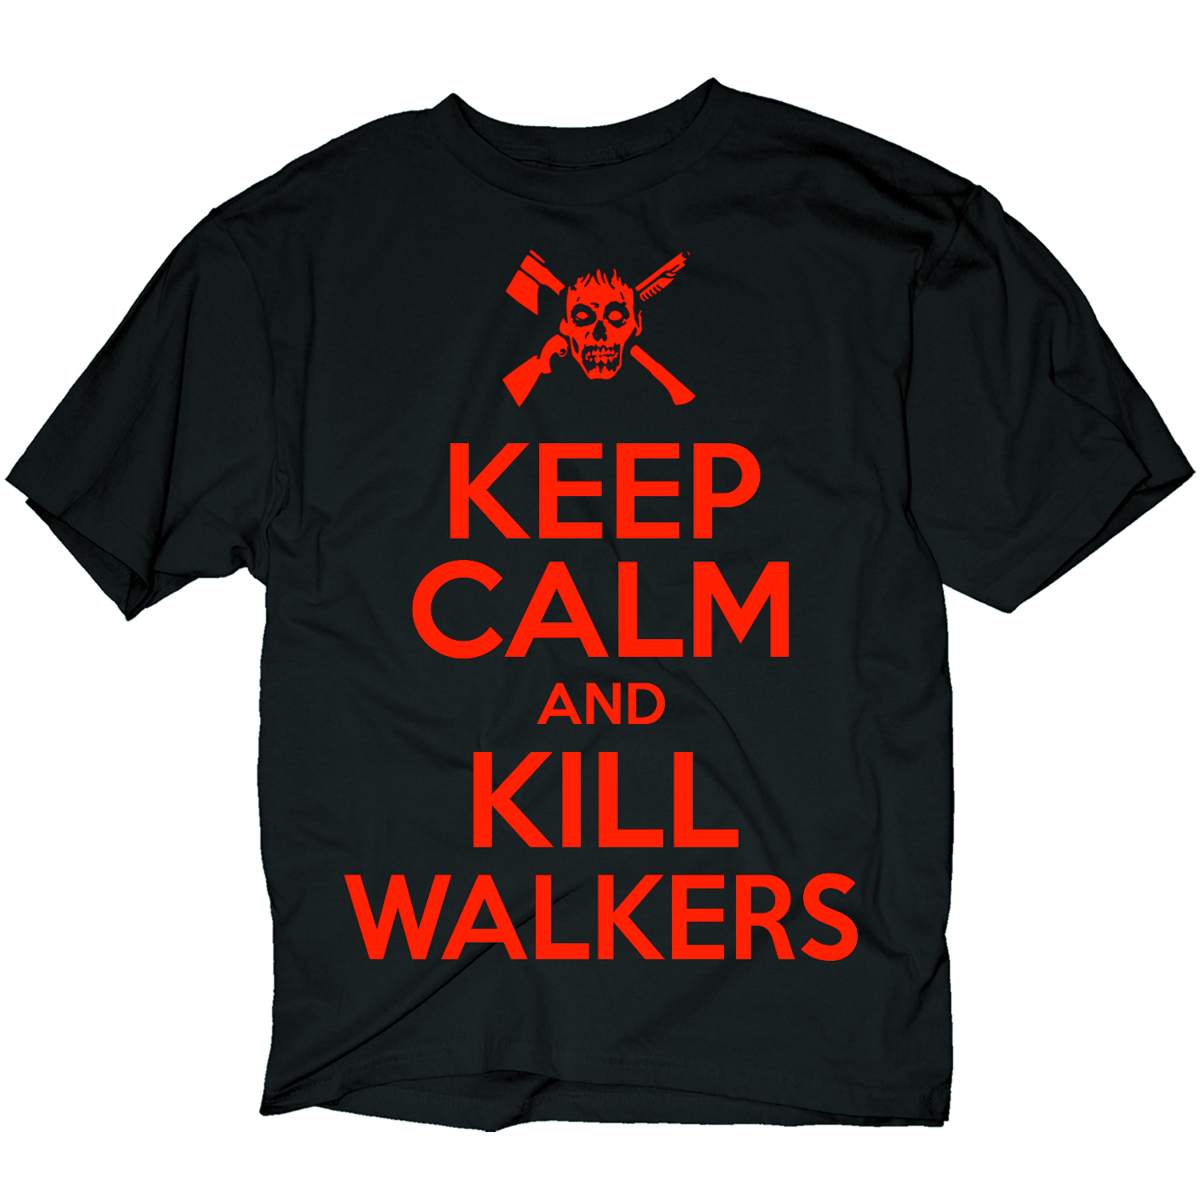 WALKING DEAD KEEP CALM KILL WALKERS PX BLK T/S LG